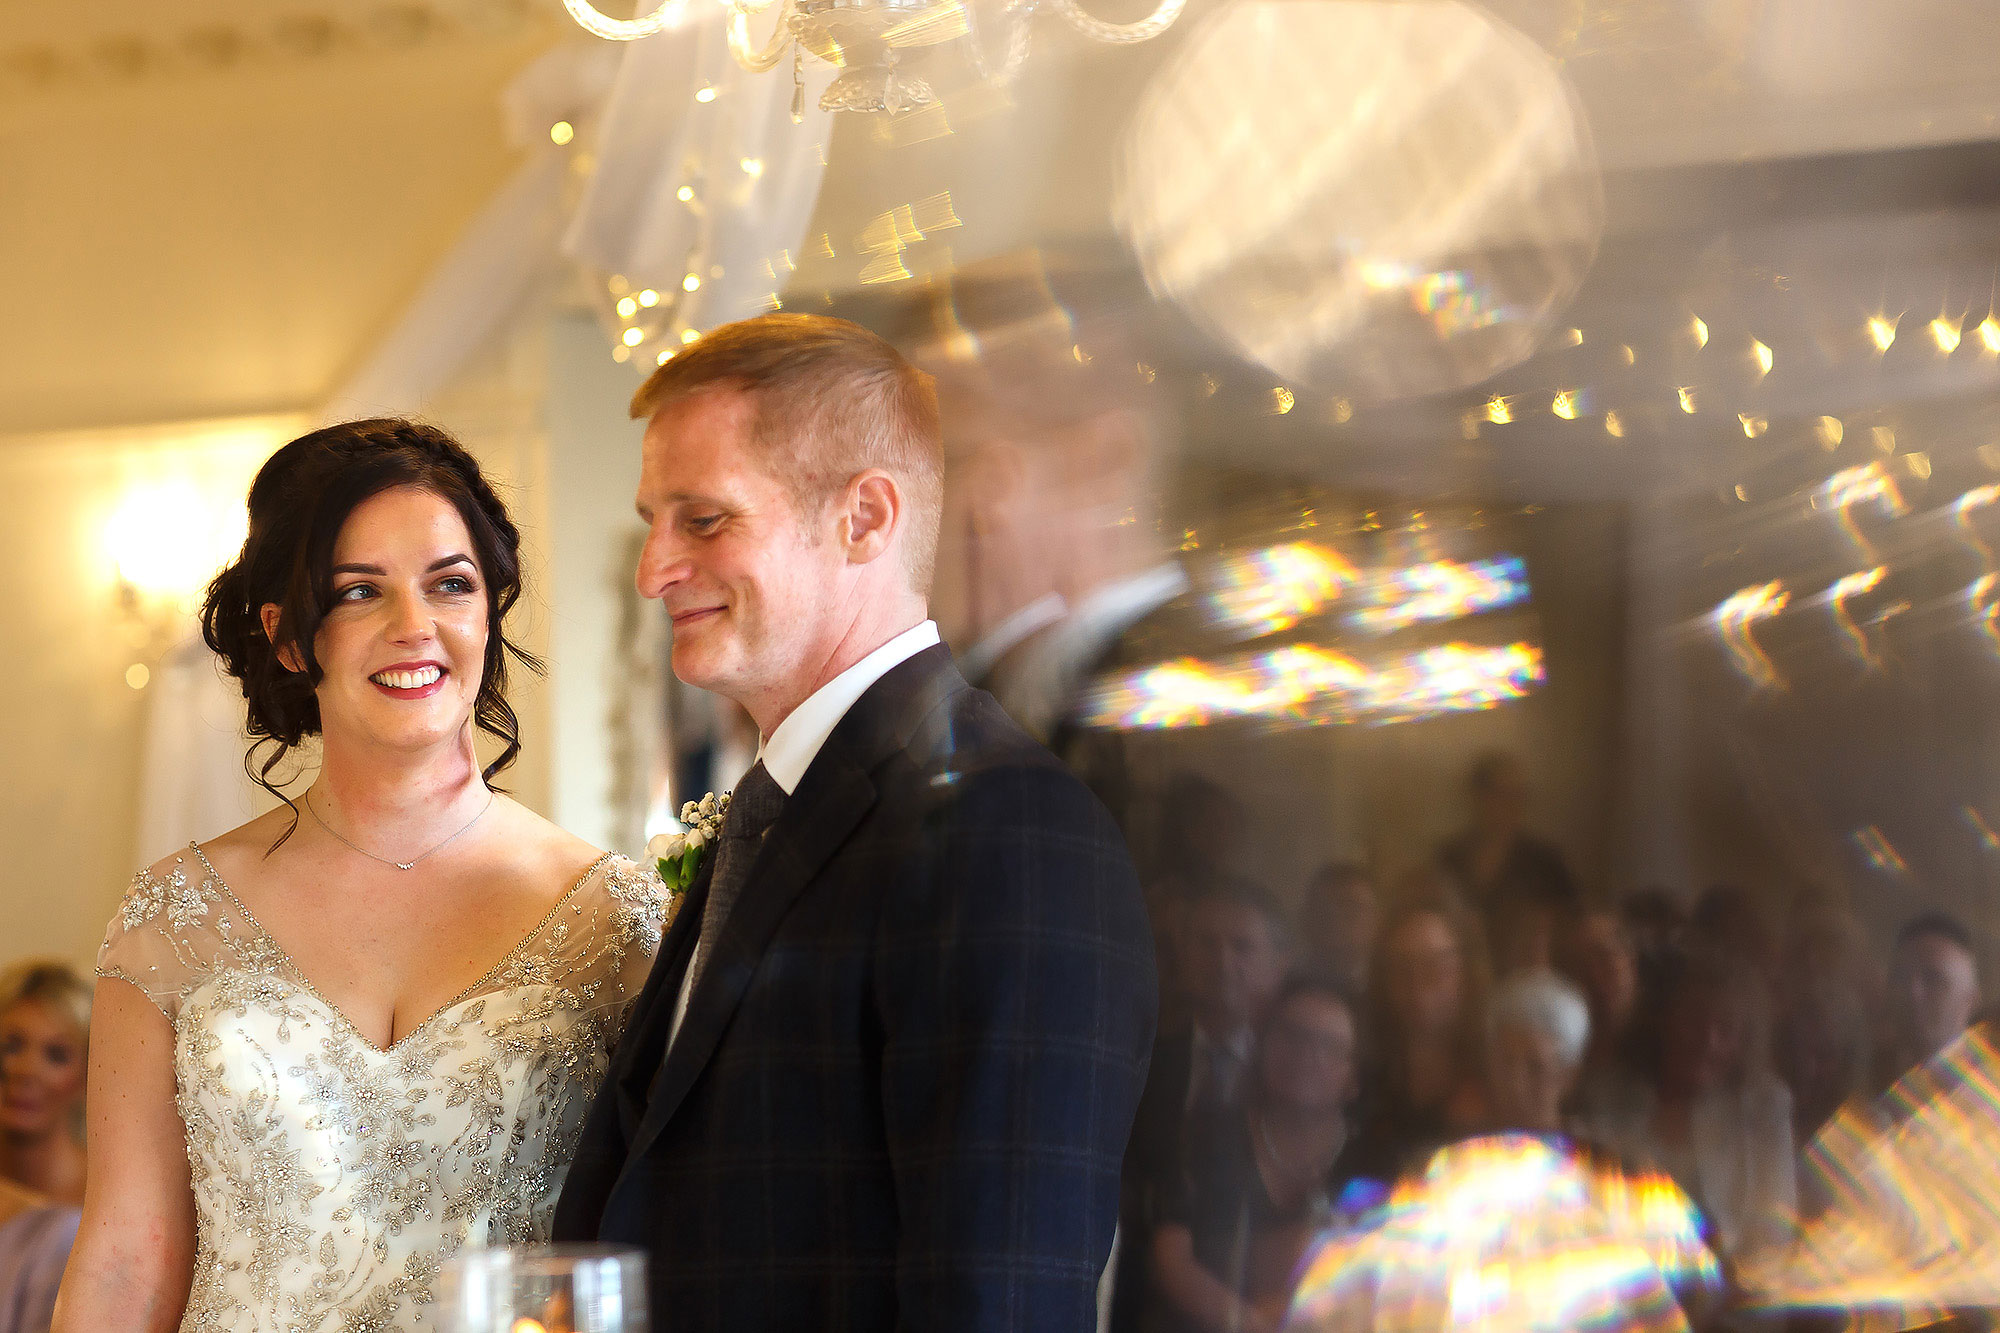 Bride with dark hair and low bun wearing beaded wedding dress smiling, looking towards the groom | Eaves Hall wedding photography by Toni Darcy